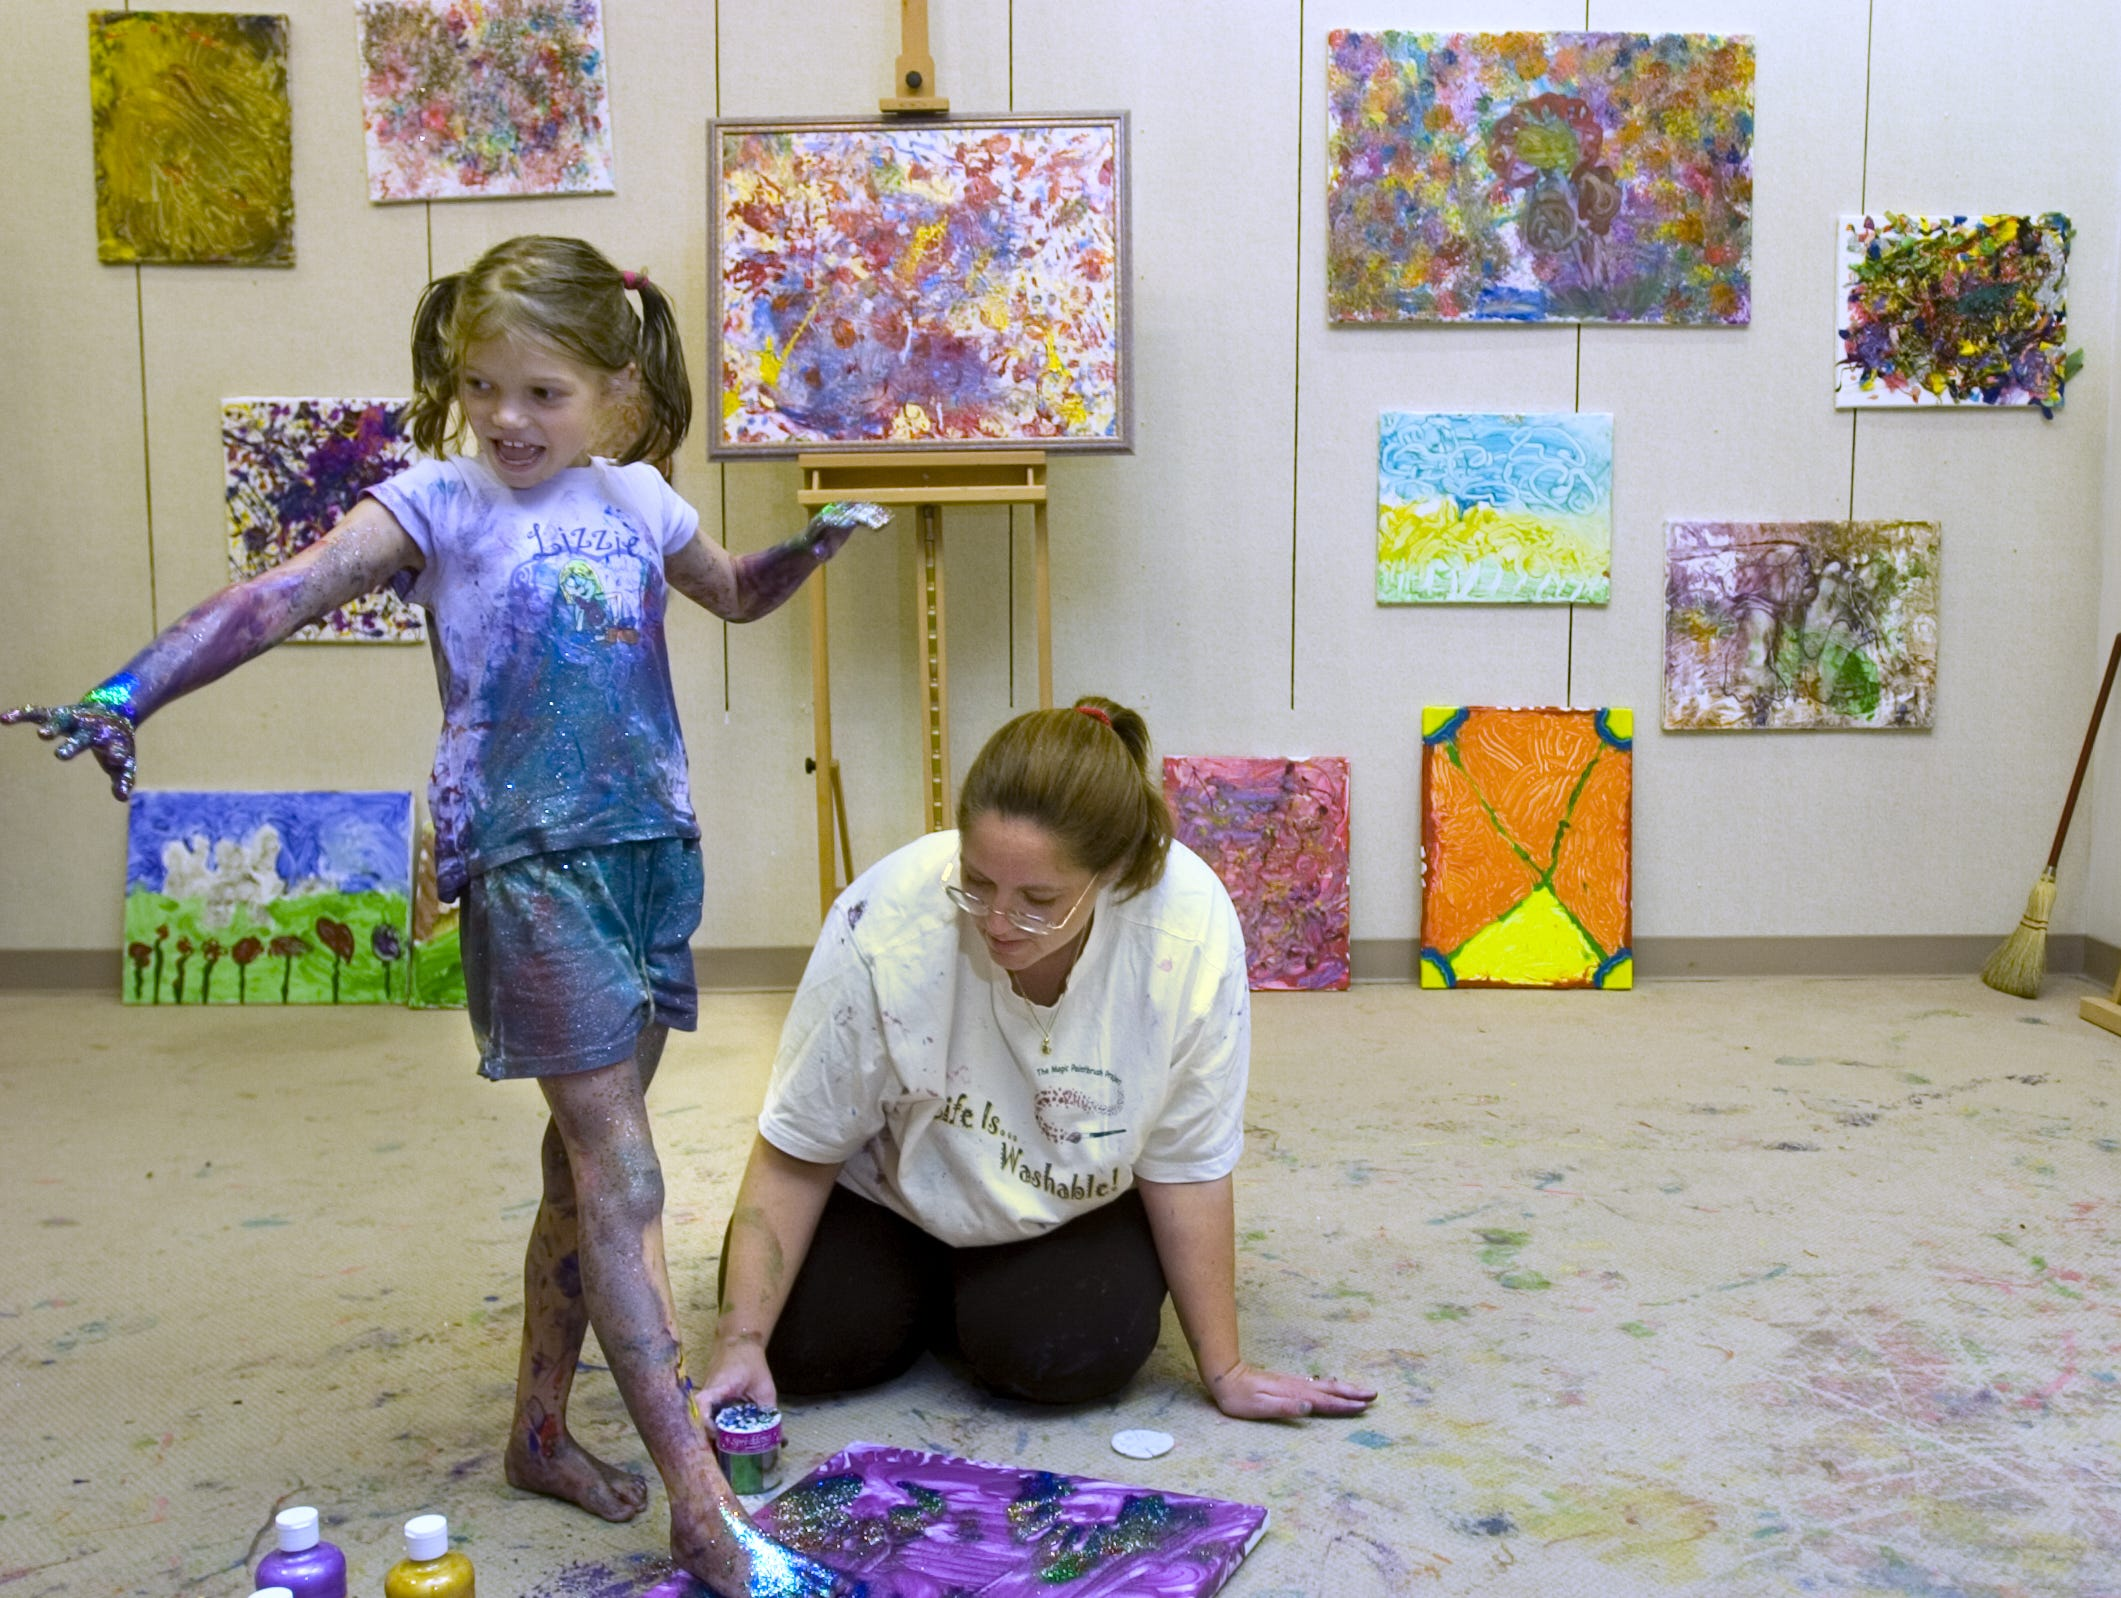 Shannon Wheeler, 8, admires her paint and glitter covered hand as The Magic Paintbrush Project coordinator Jennifer O'Brien adds a footprint to Shannon's painting in August of 2006. In the background are the works of other special needs visitors to the project's Oakdale Mall space.